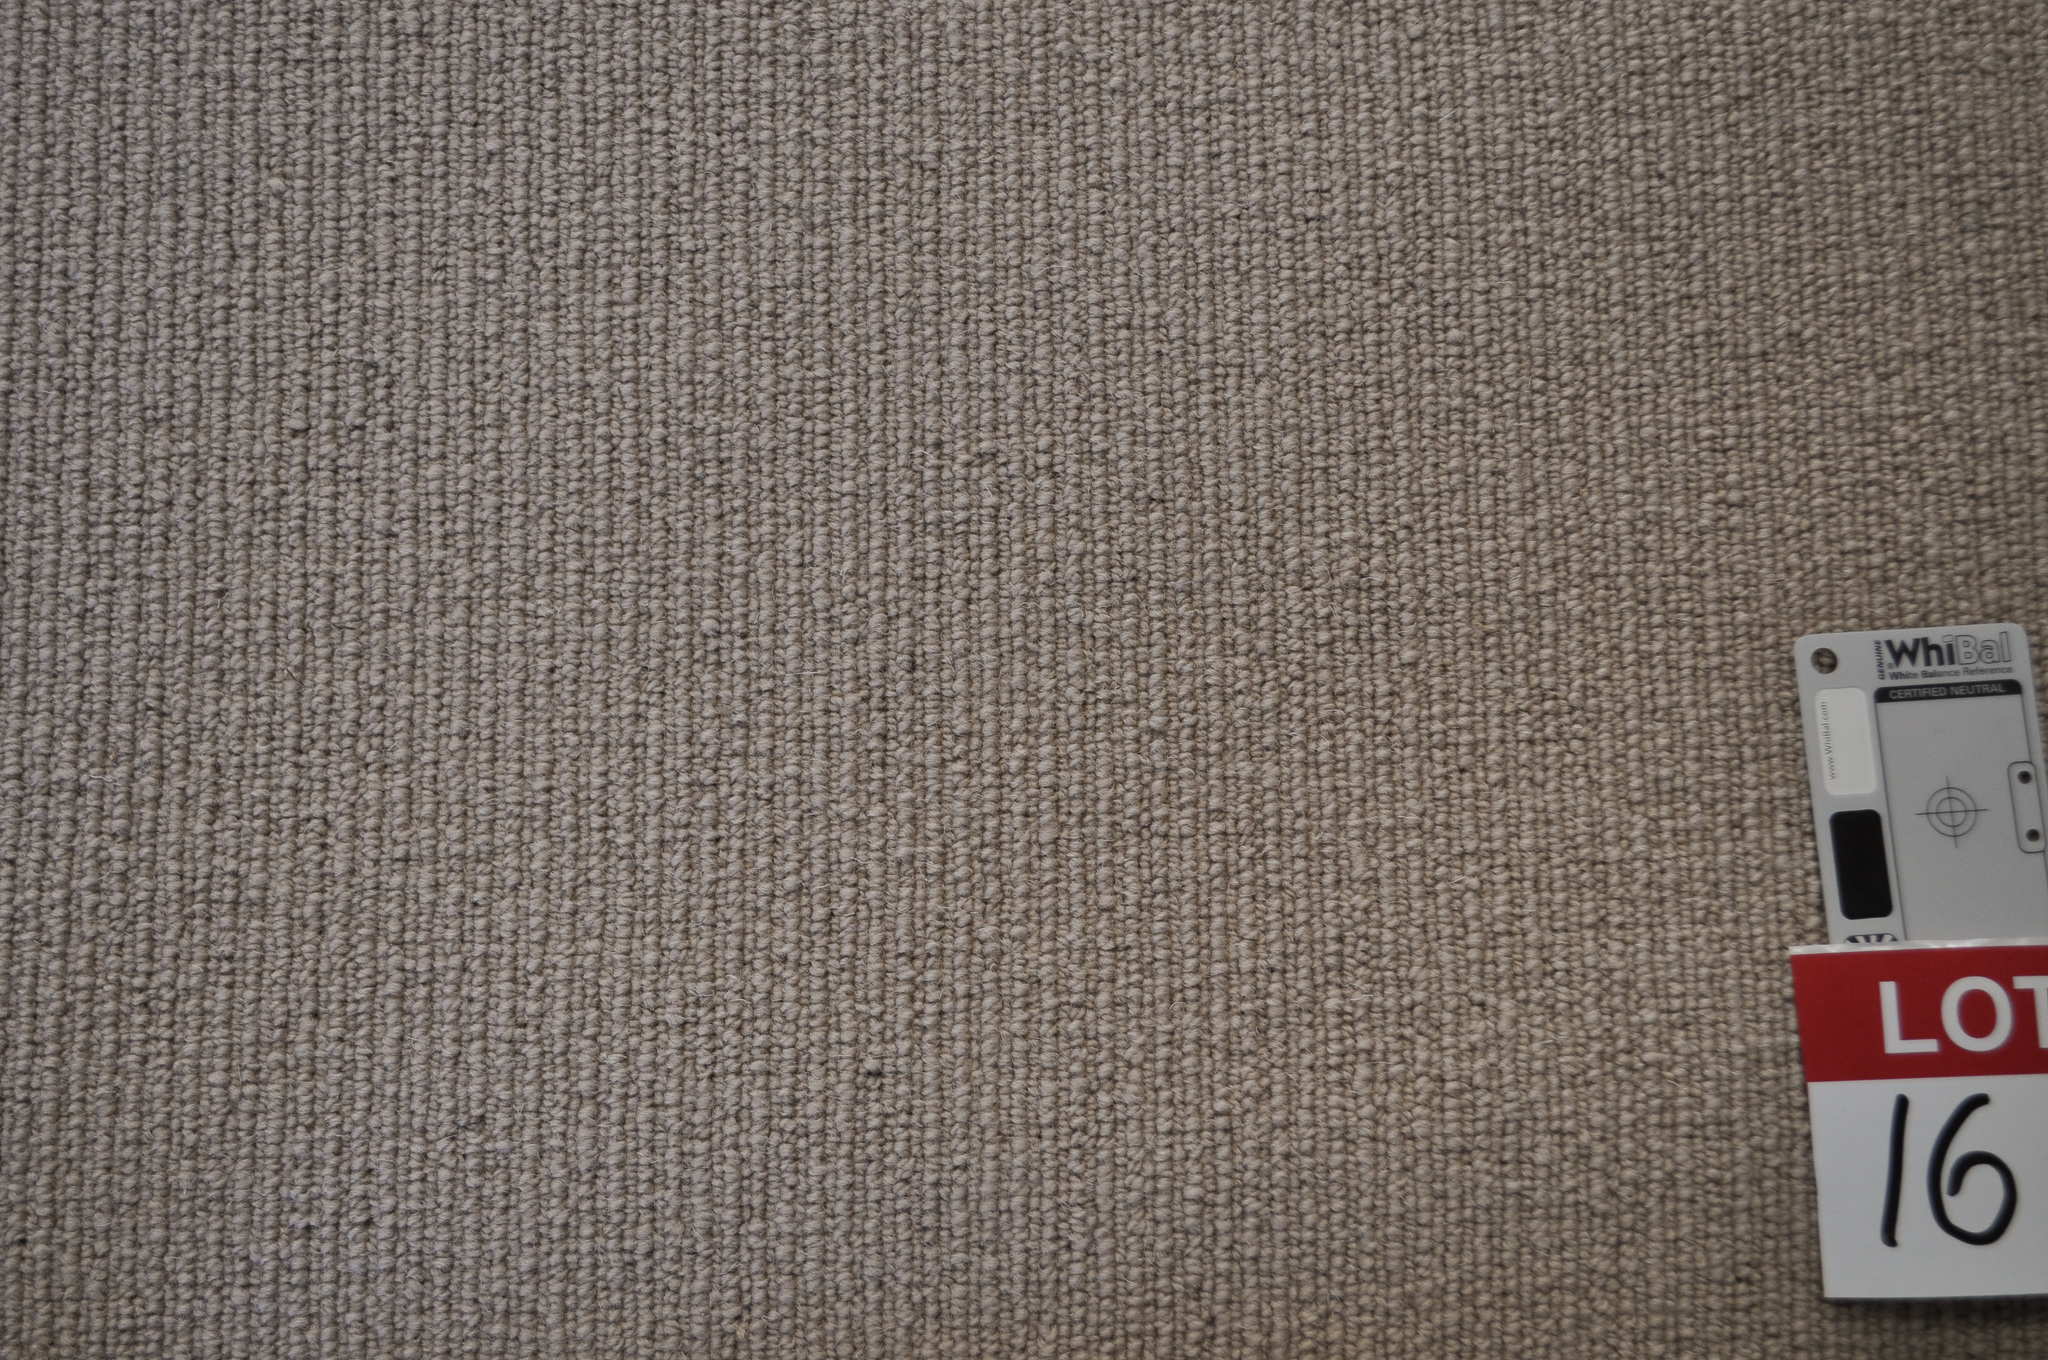 dark beige colored, sisal type, roll of carpet on sale at Concord Floors, it being a remnant roll in Concord Floor's warehouse.